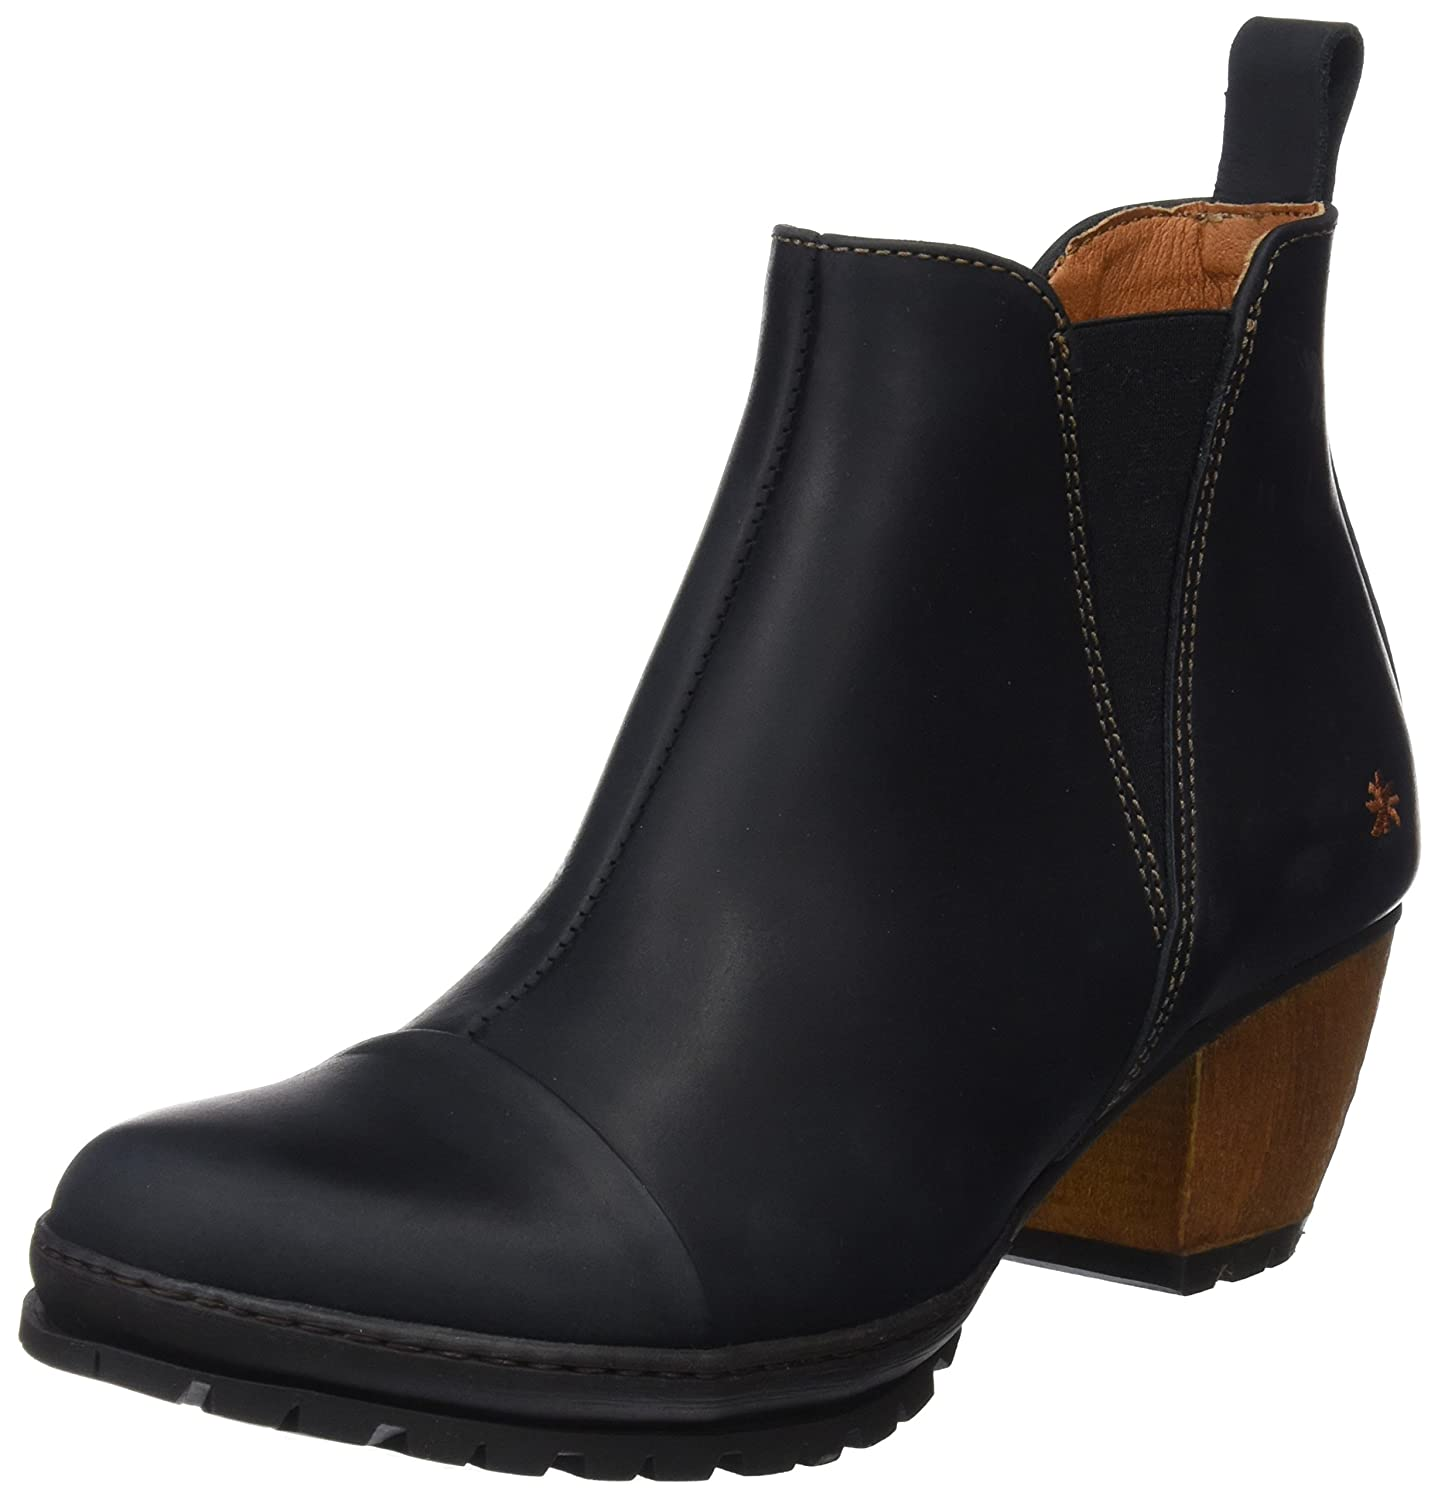 Art Rustic, 17525 Bottines Bottines Femme B07CL78V2L Noir b69b229 - conorscully.space